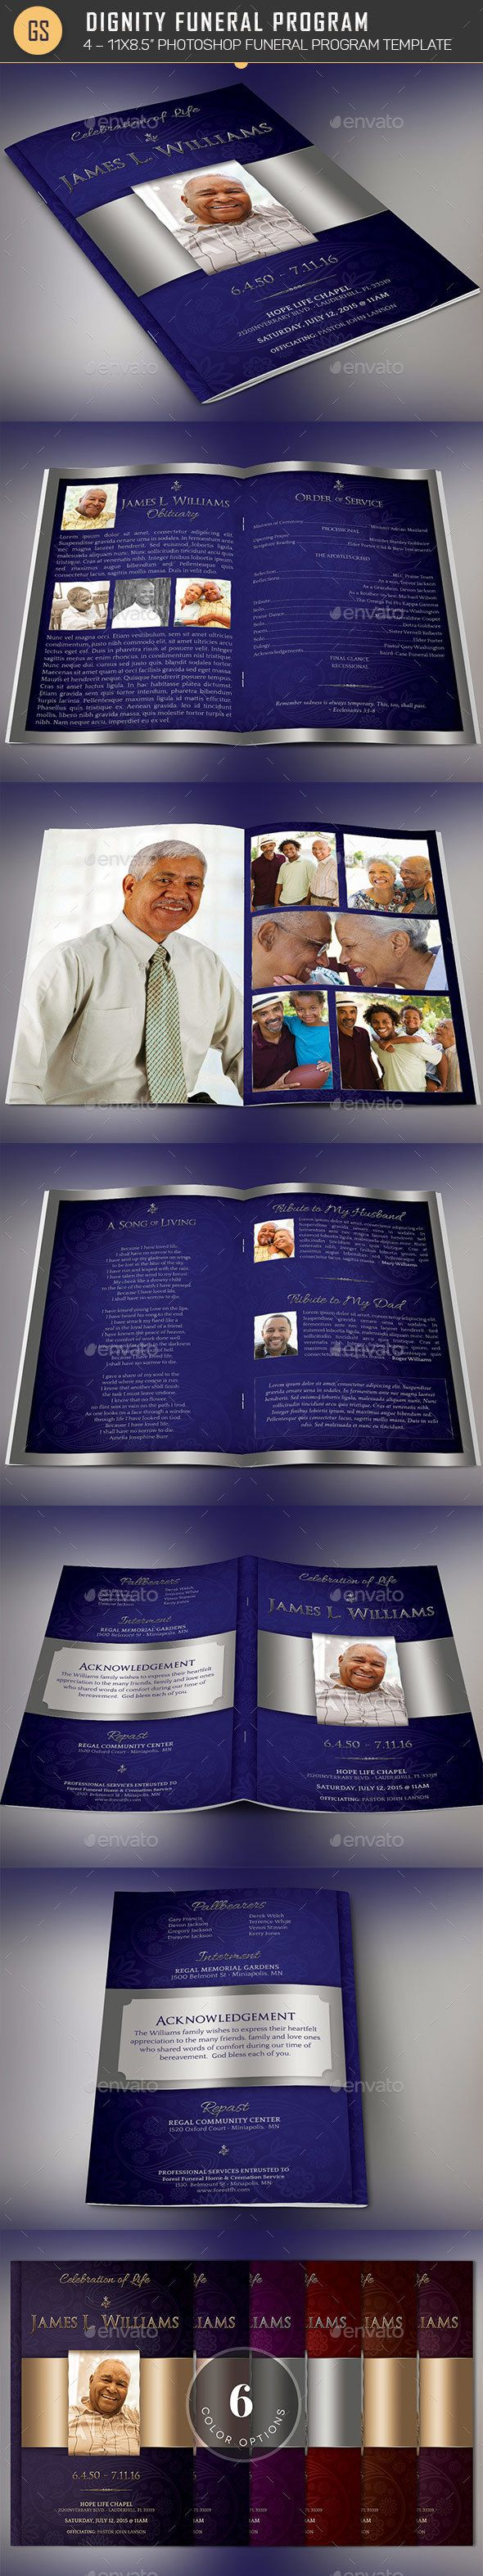 Dignity Funeral Program Photoshop Template is for a modern memorial or home going service. It¡¯s silver decals and text style laid